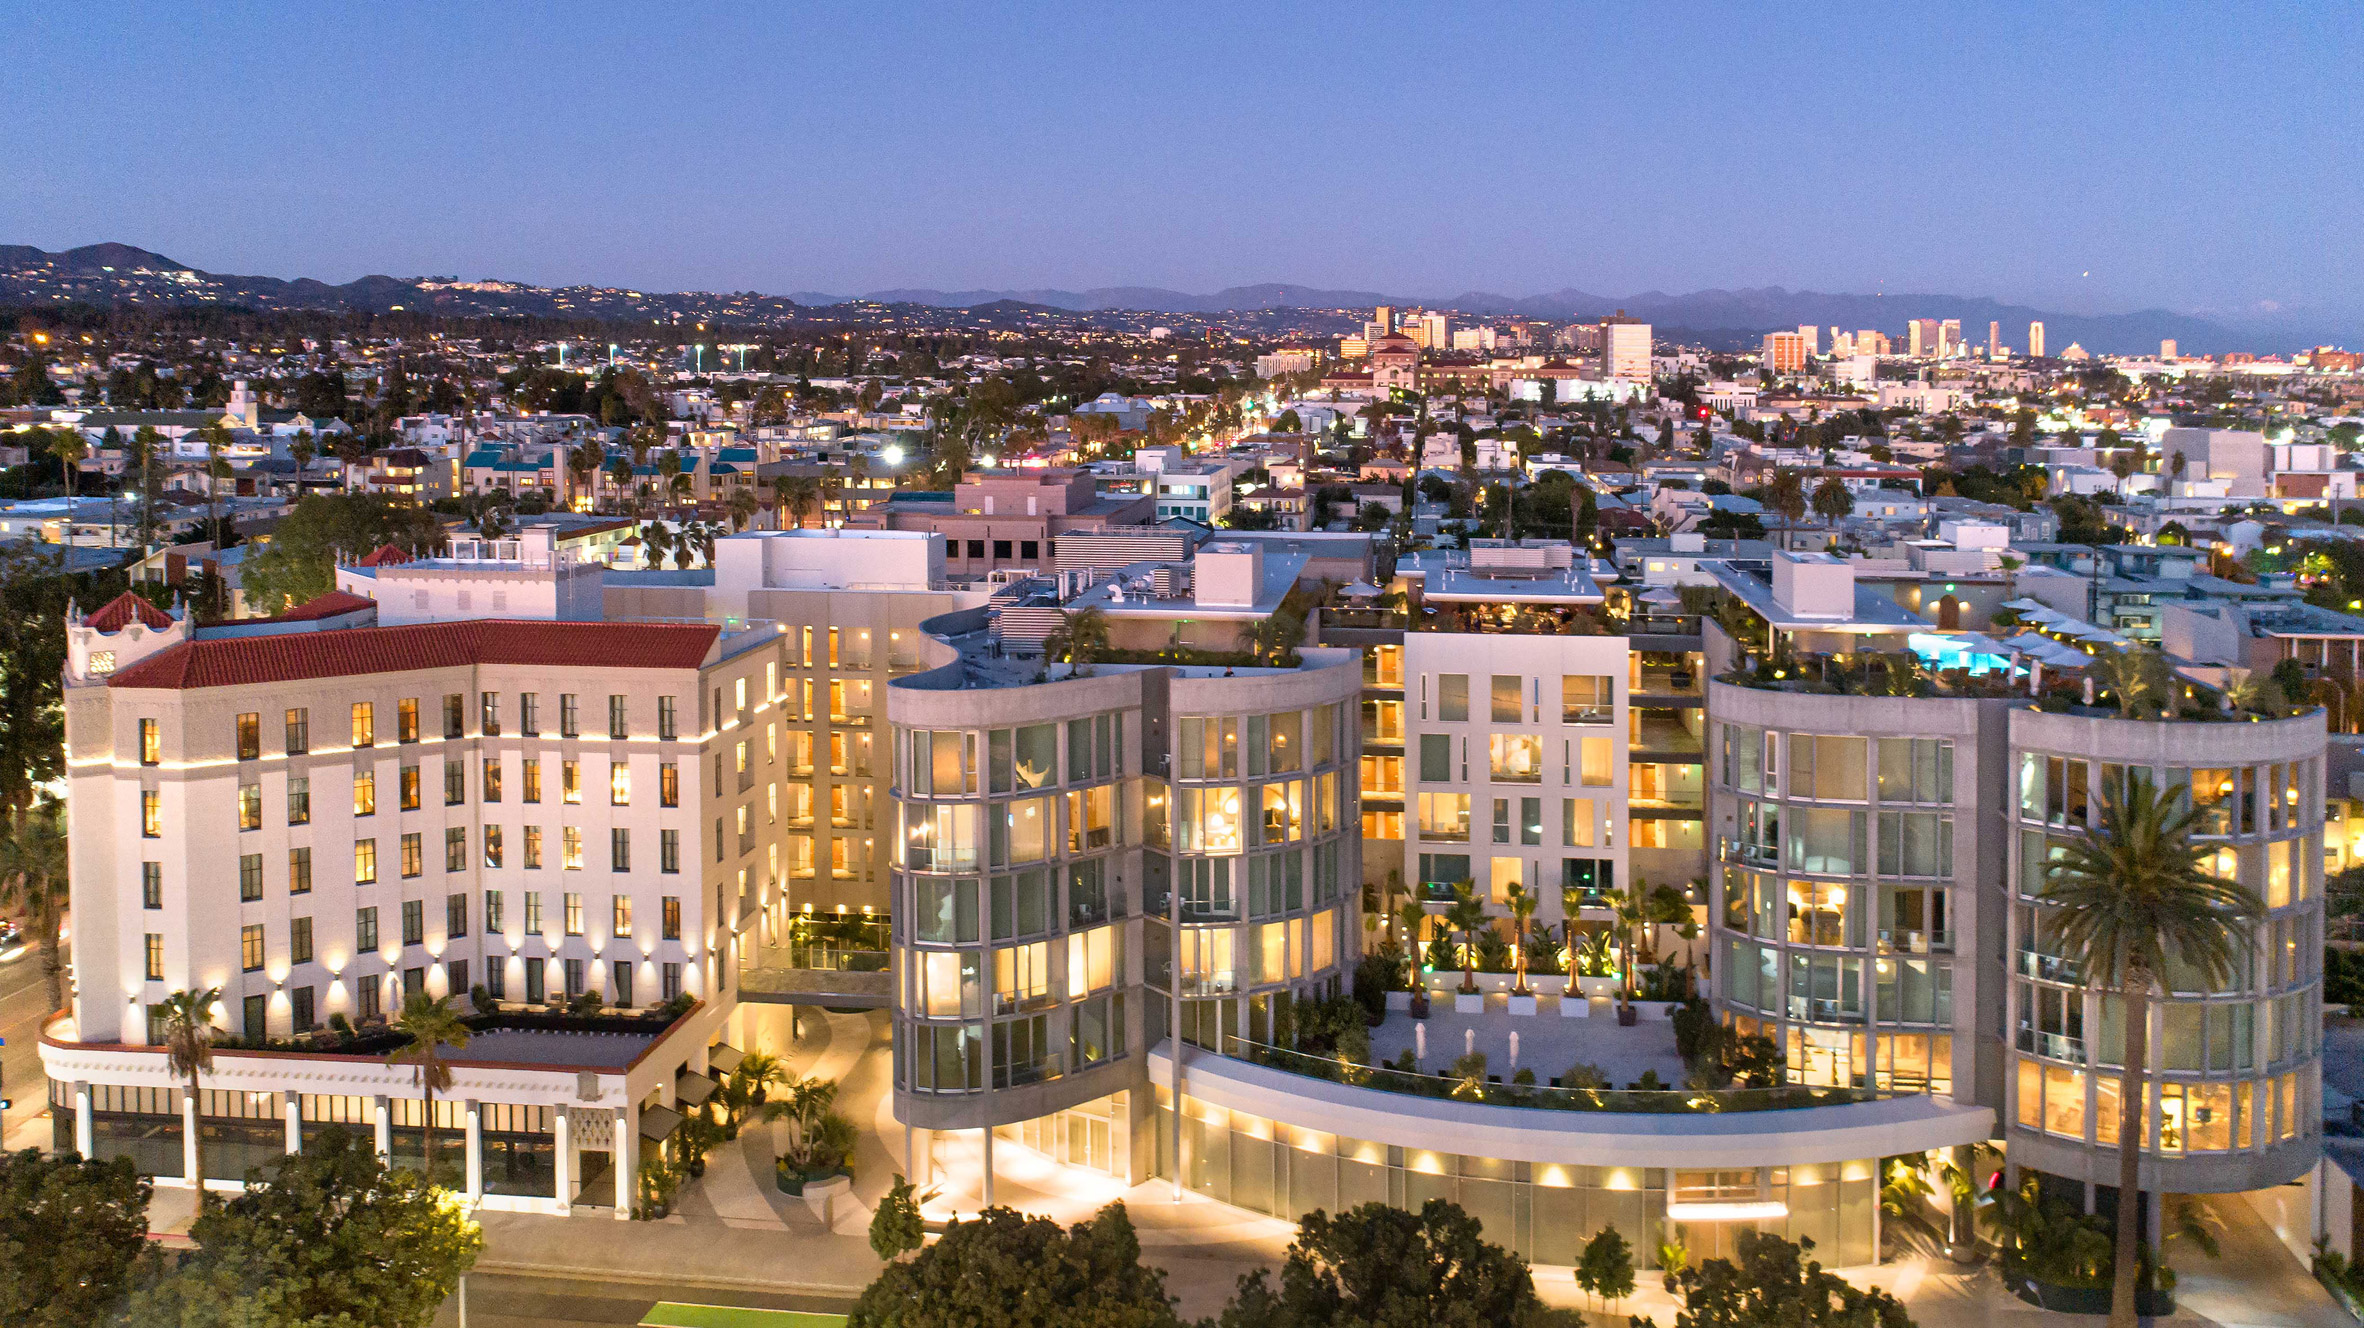 Kelly Wearstler's interiors for Santa Monica Proper Hotel